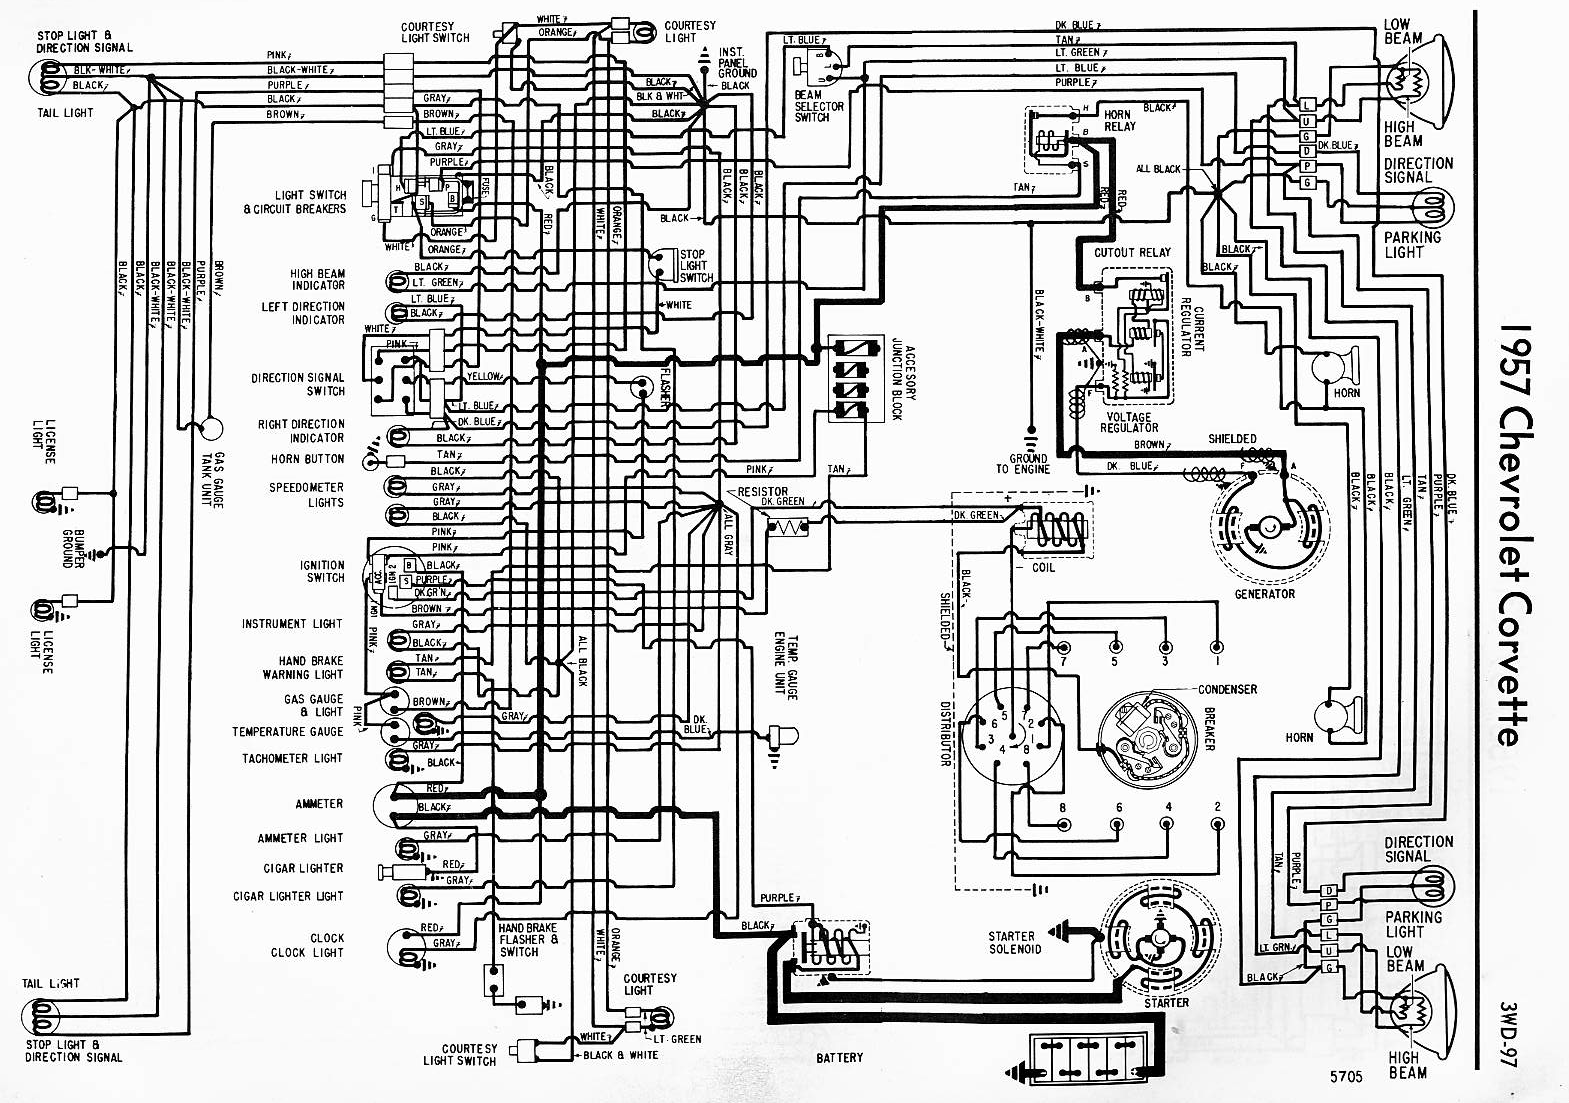 2002 Corvette Wiring Diagram Will Be A Thing 2004 Radio 1957 Willcox Inc Rh Repairs Willcoxcorvette Com